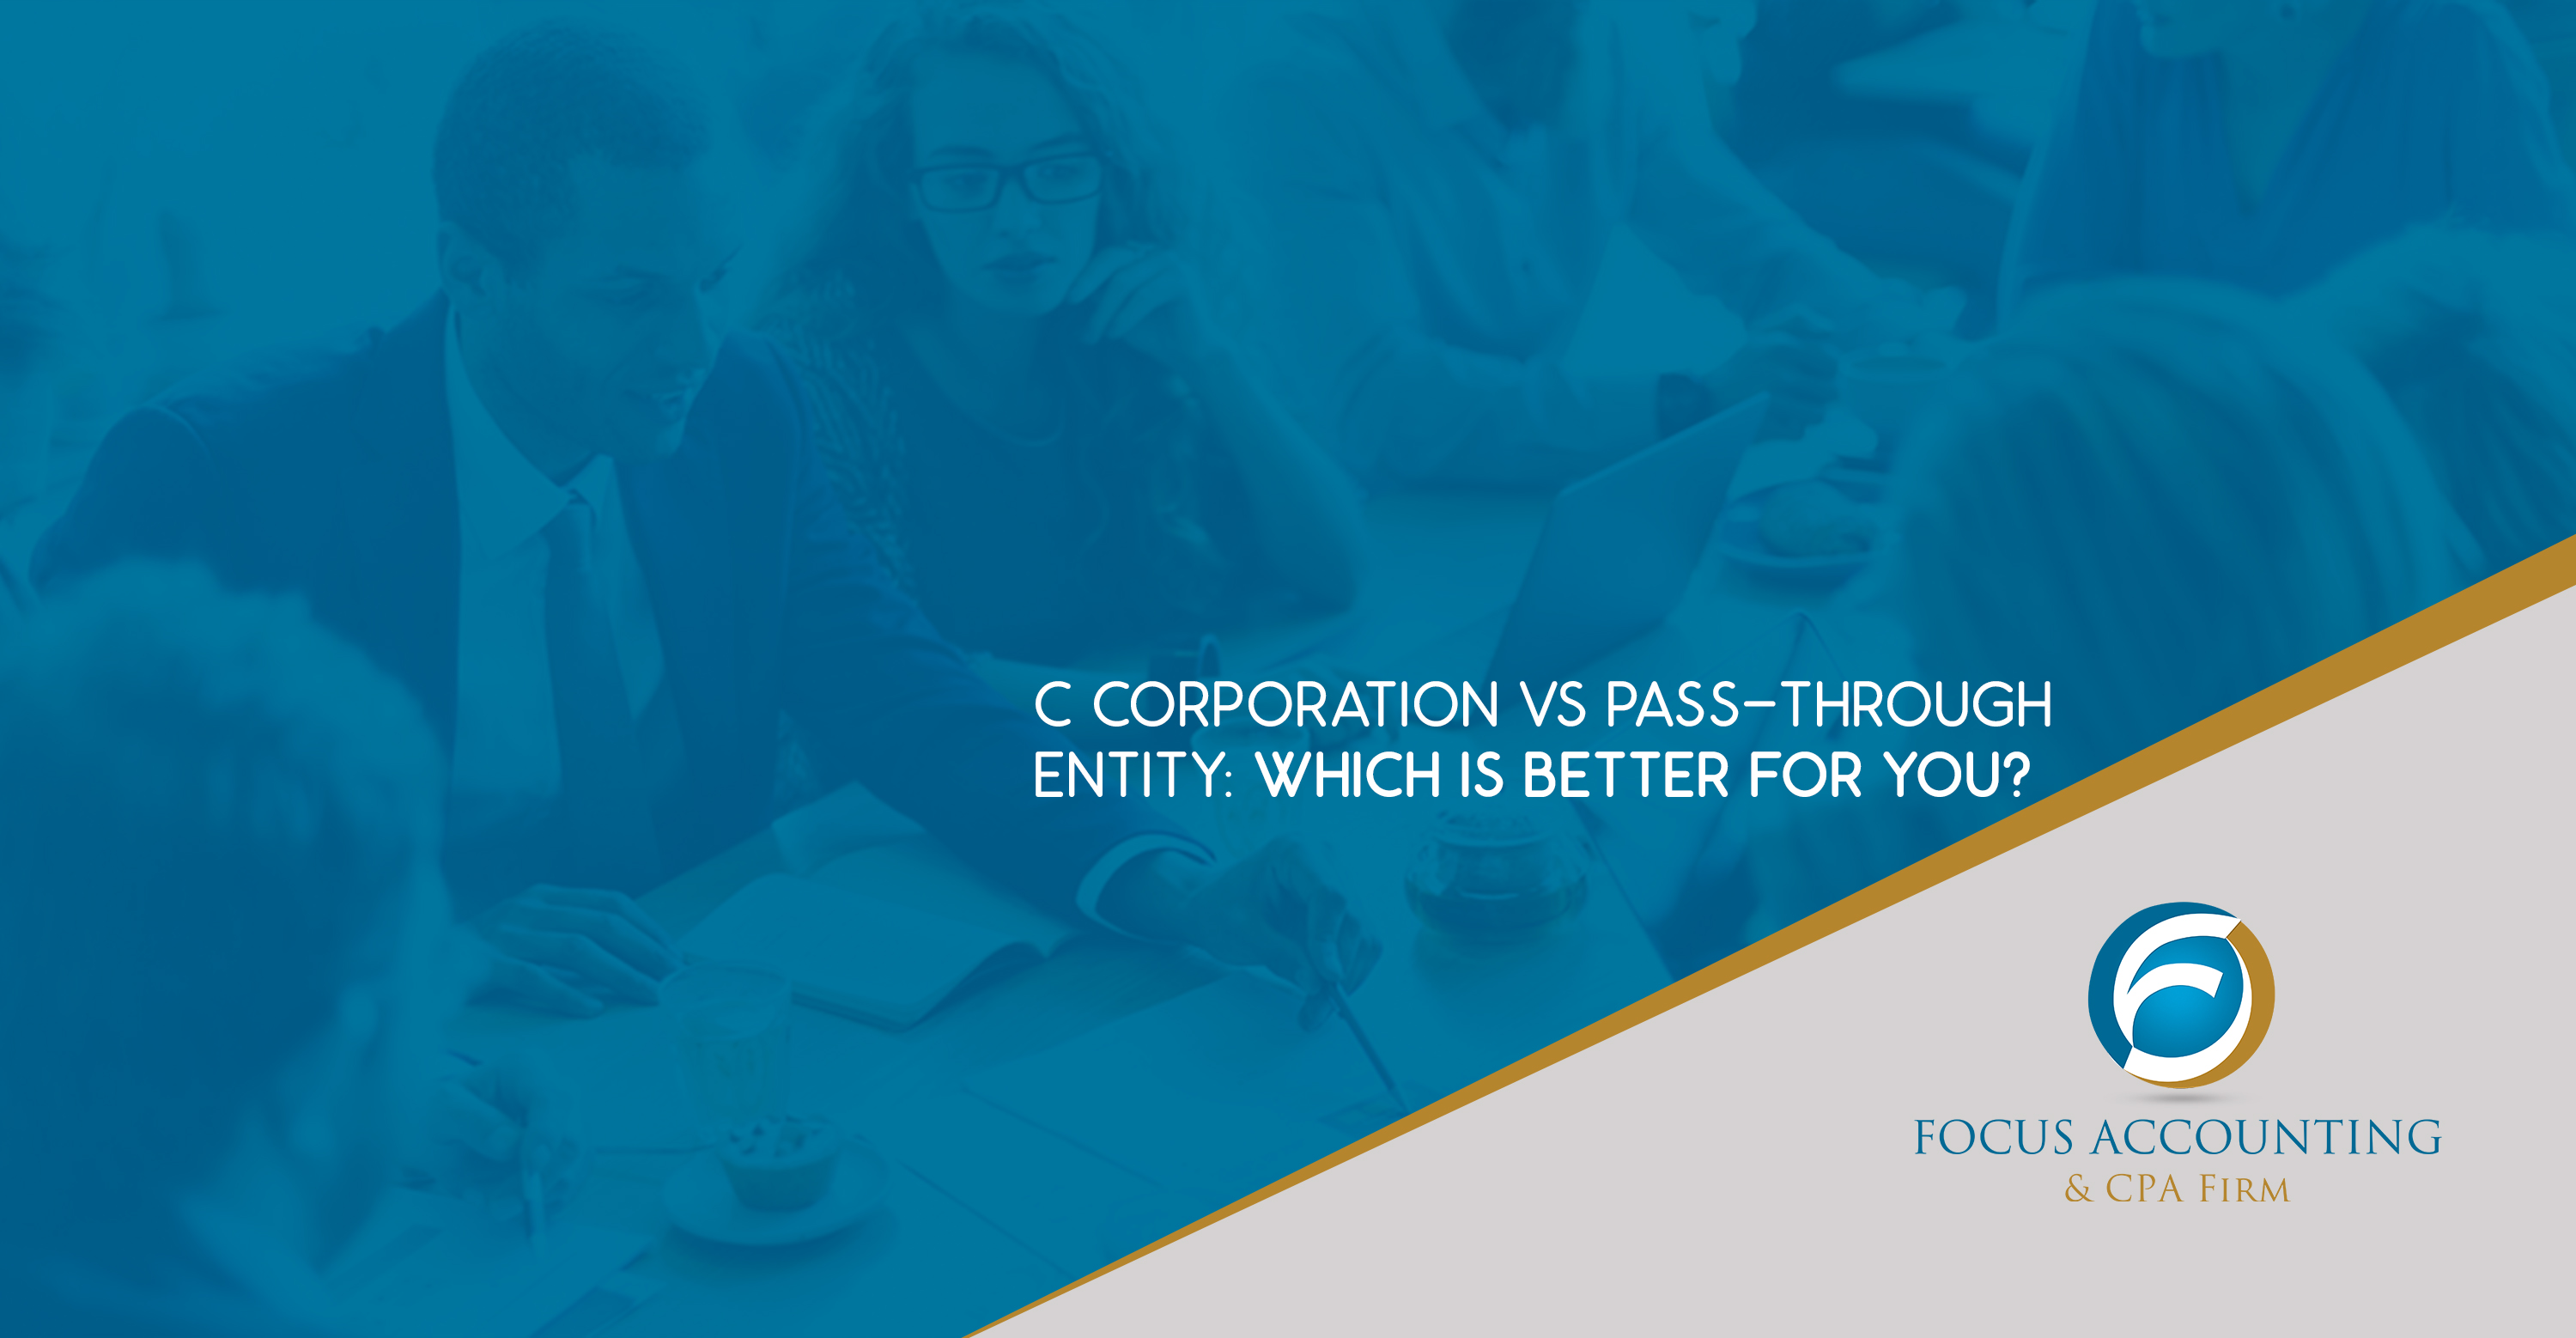 C Corporation Vs Pass-through Entity: Which Is Better For You?